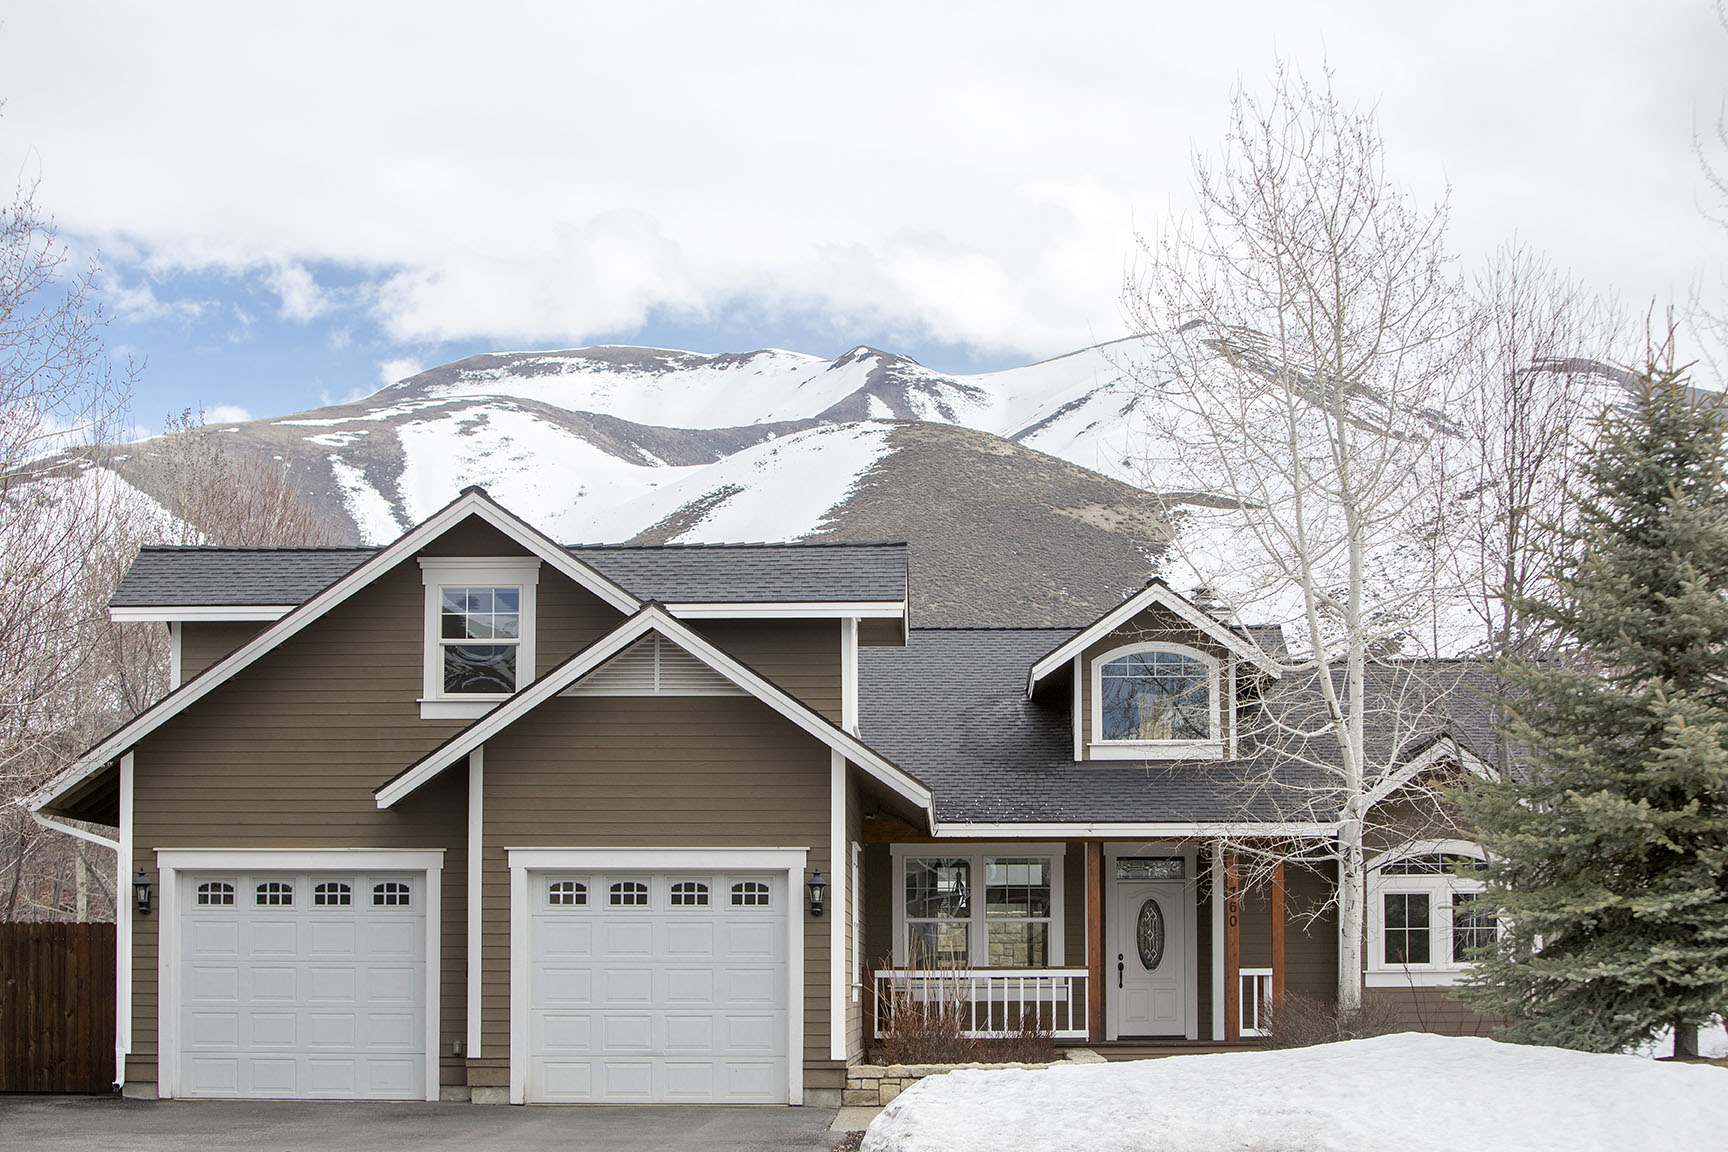 Single Family Home for Sale at Fine Craftsmanship with lots of style 760 Eastridge Dr Hailey, Idaho 83333 United States